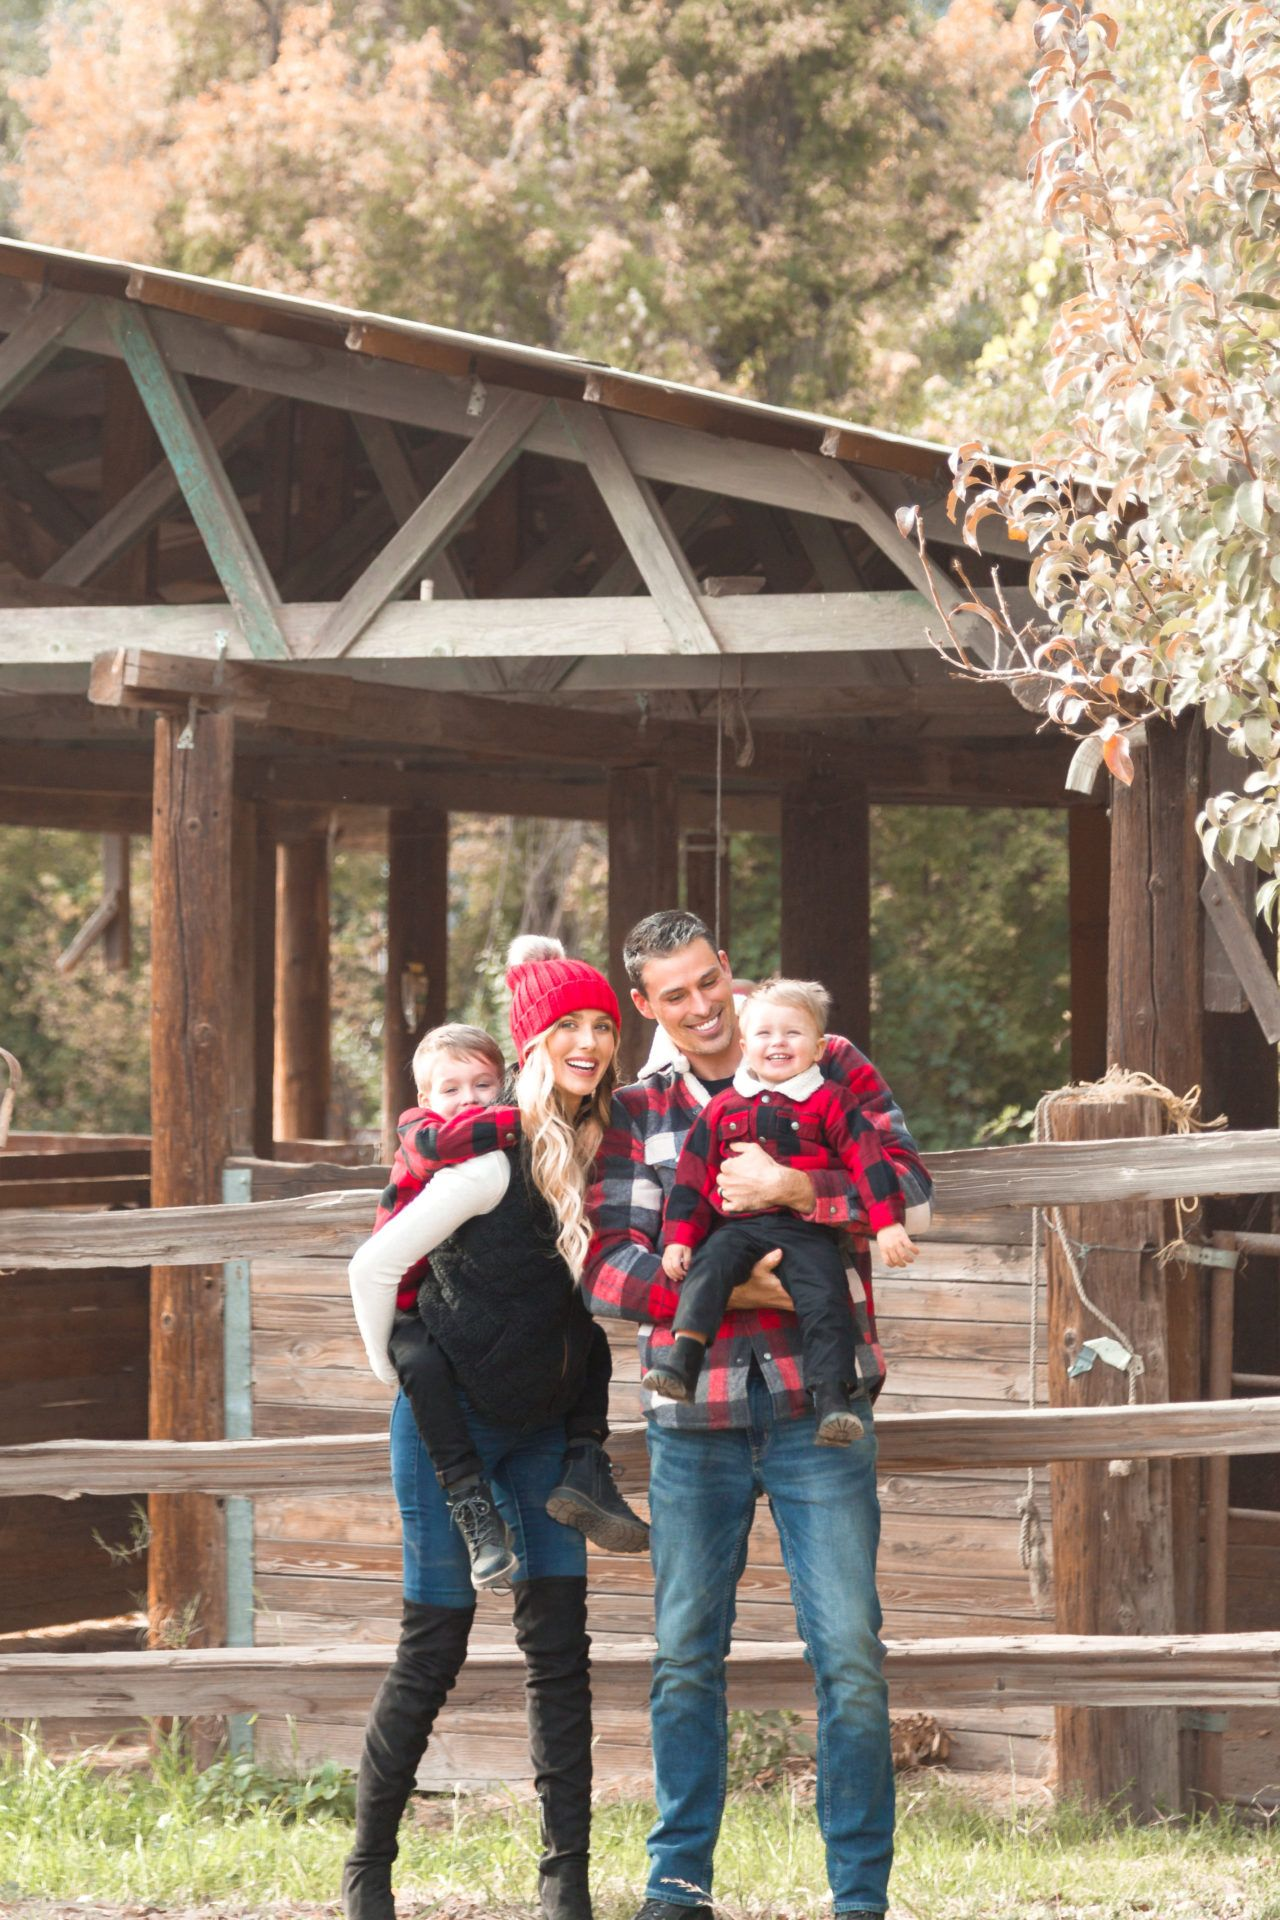 The perfect outfits for family photos, a trip to the mountains or caroling! If these don't scream #holiyay than I don't know what does! @oldnavy #sponsored #oldnavystyle #familyphotooutfits